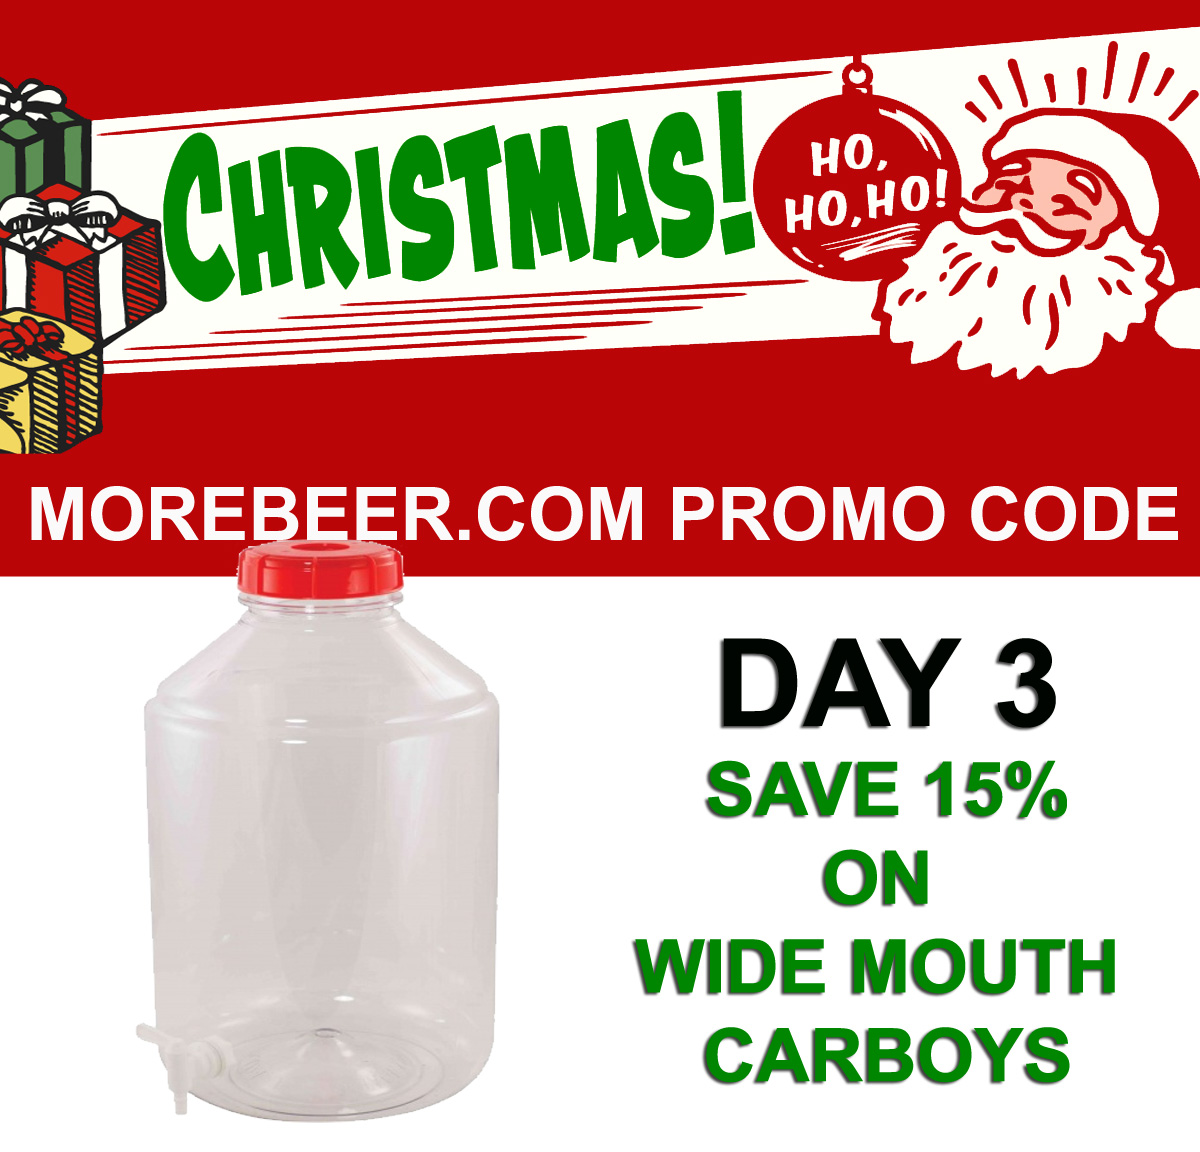 Coupon Code For Save 15% On FerMonster Wide Mouth Home Brewing Carboys Coupon Code